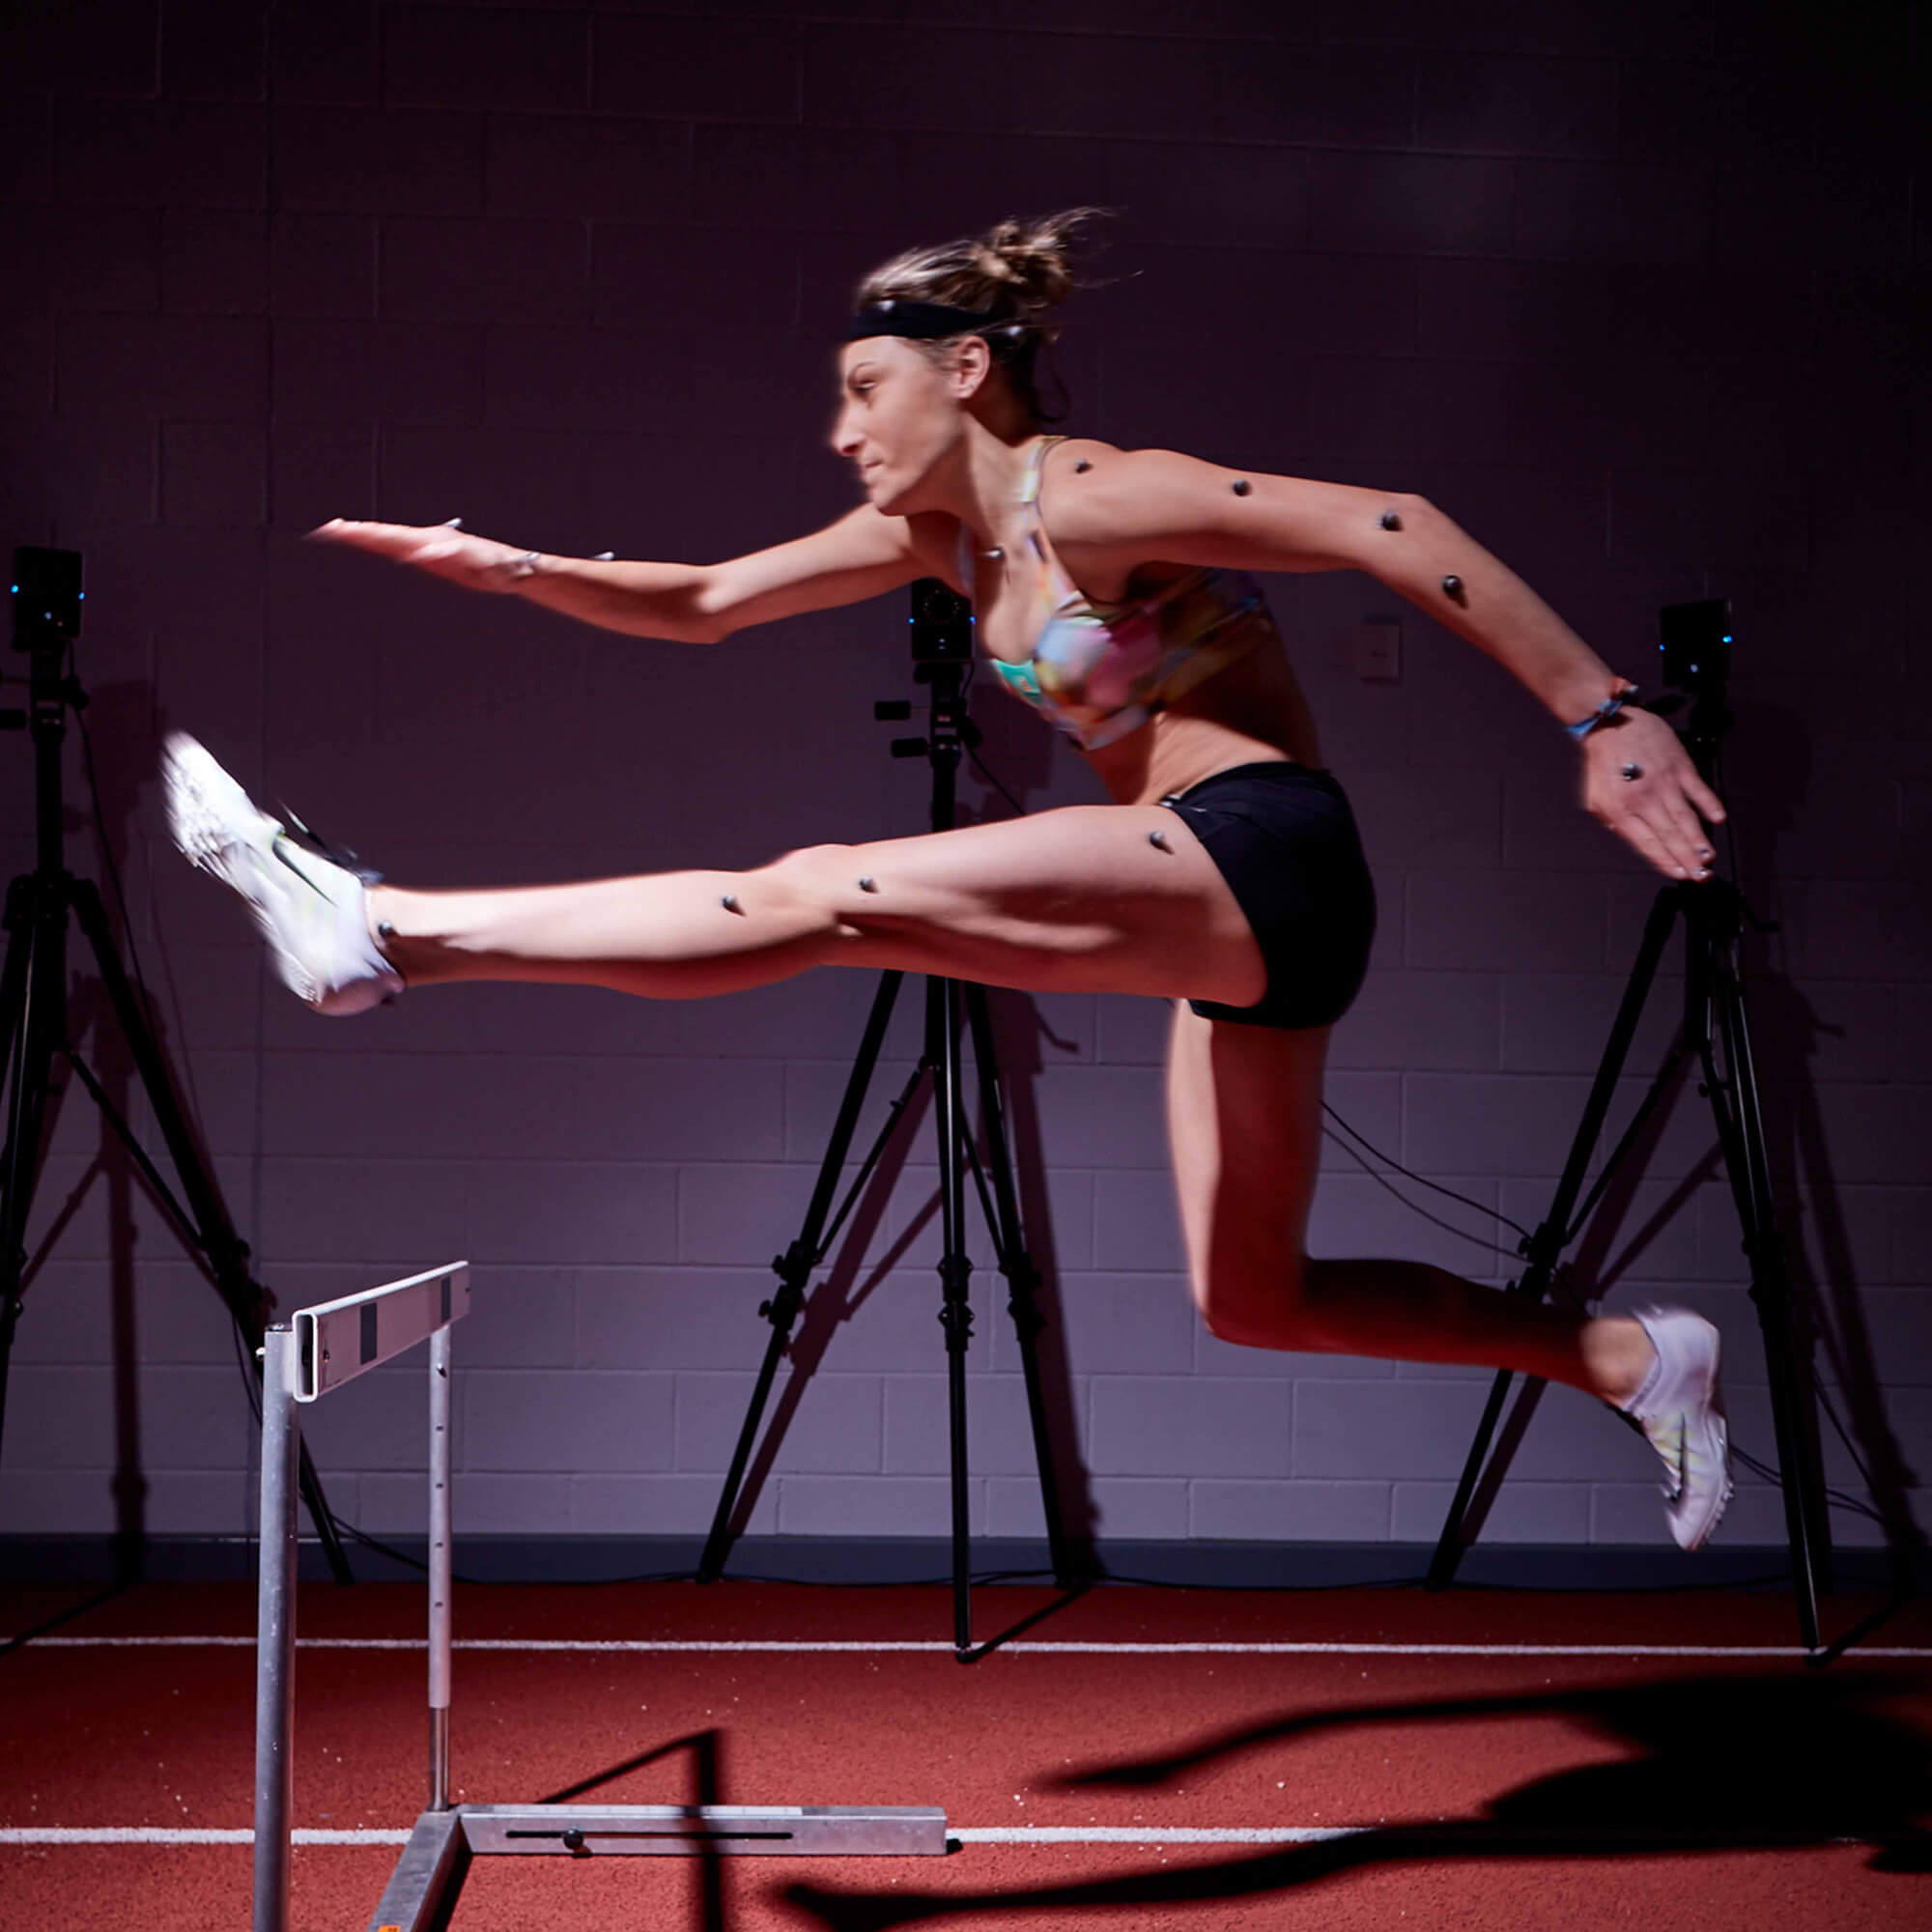 Image of a female hurdler jumping a hurdle with the VICON camera examining her movement